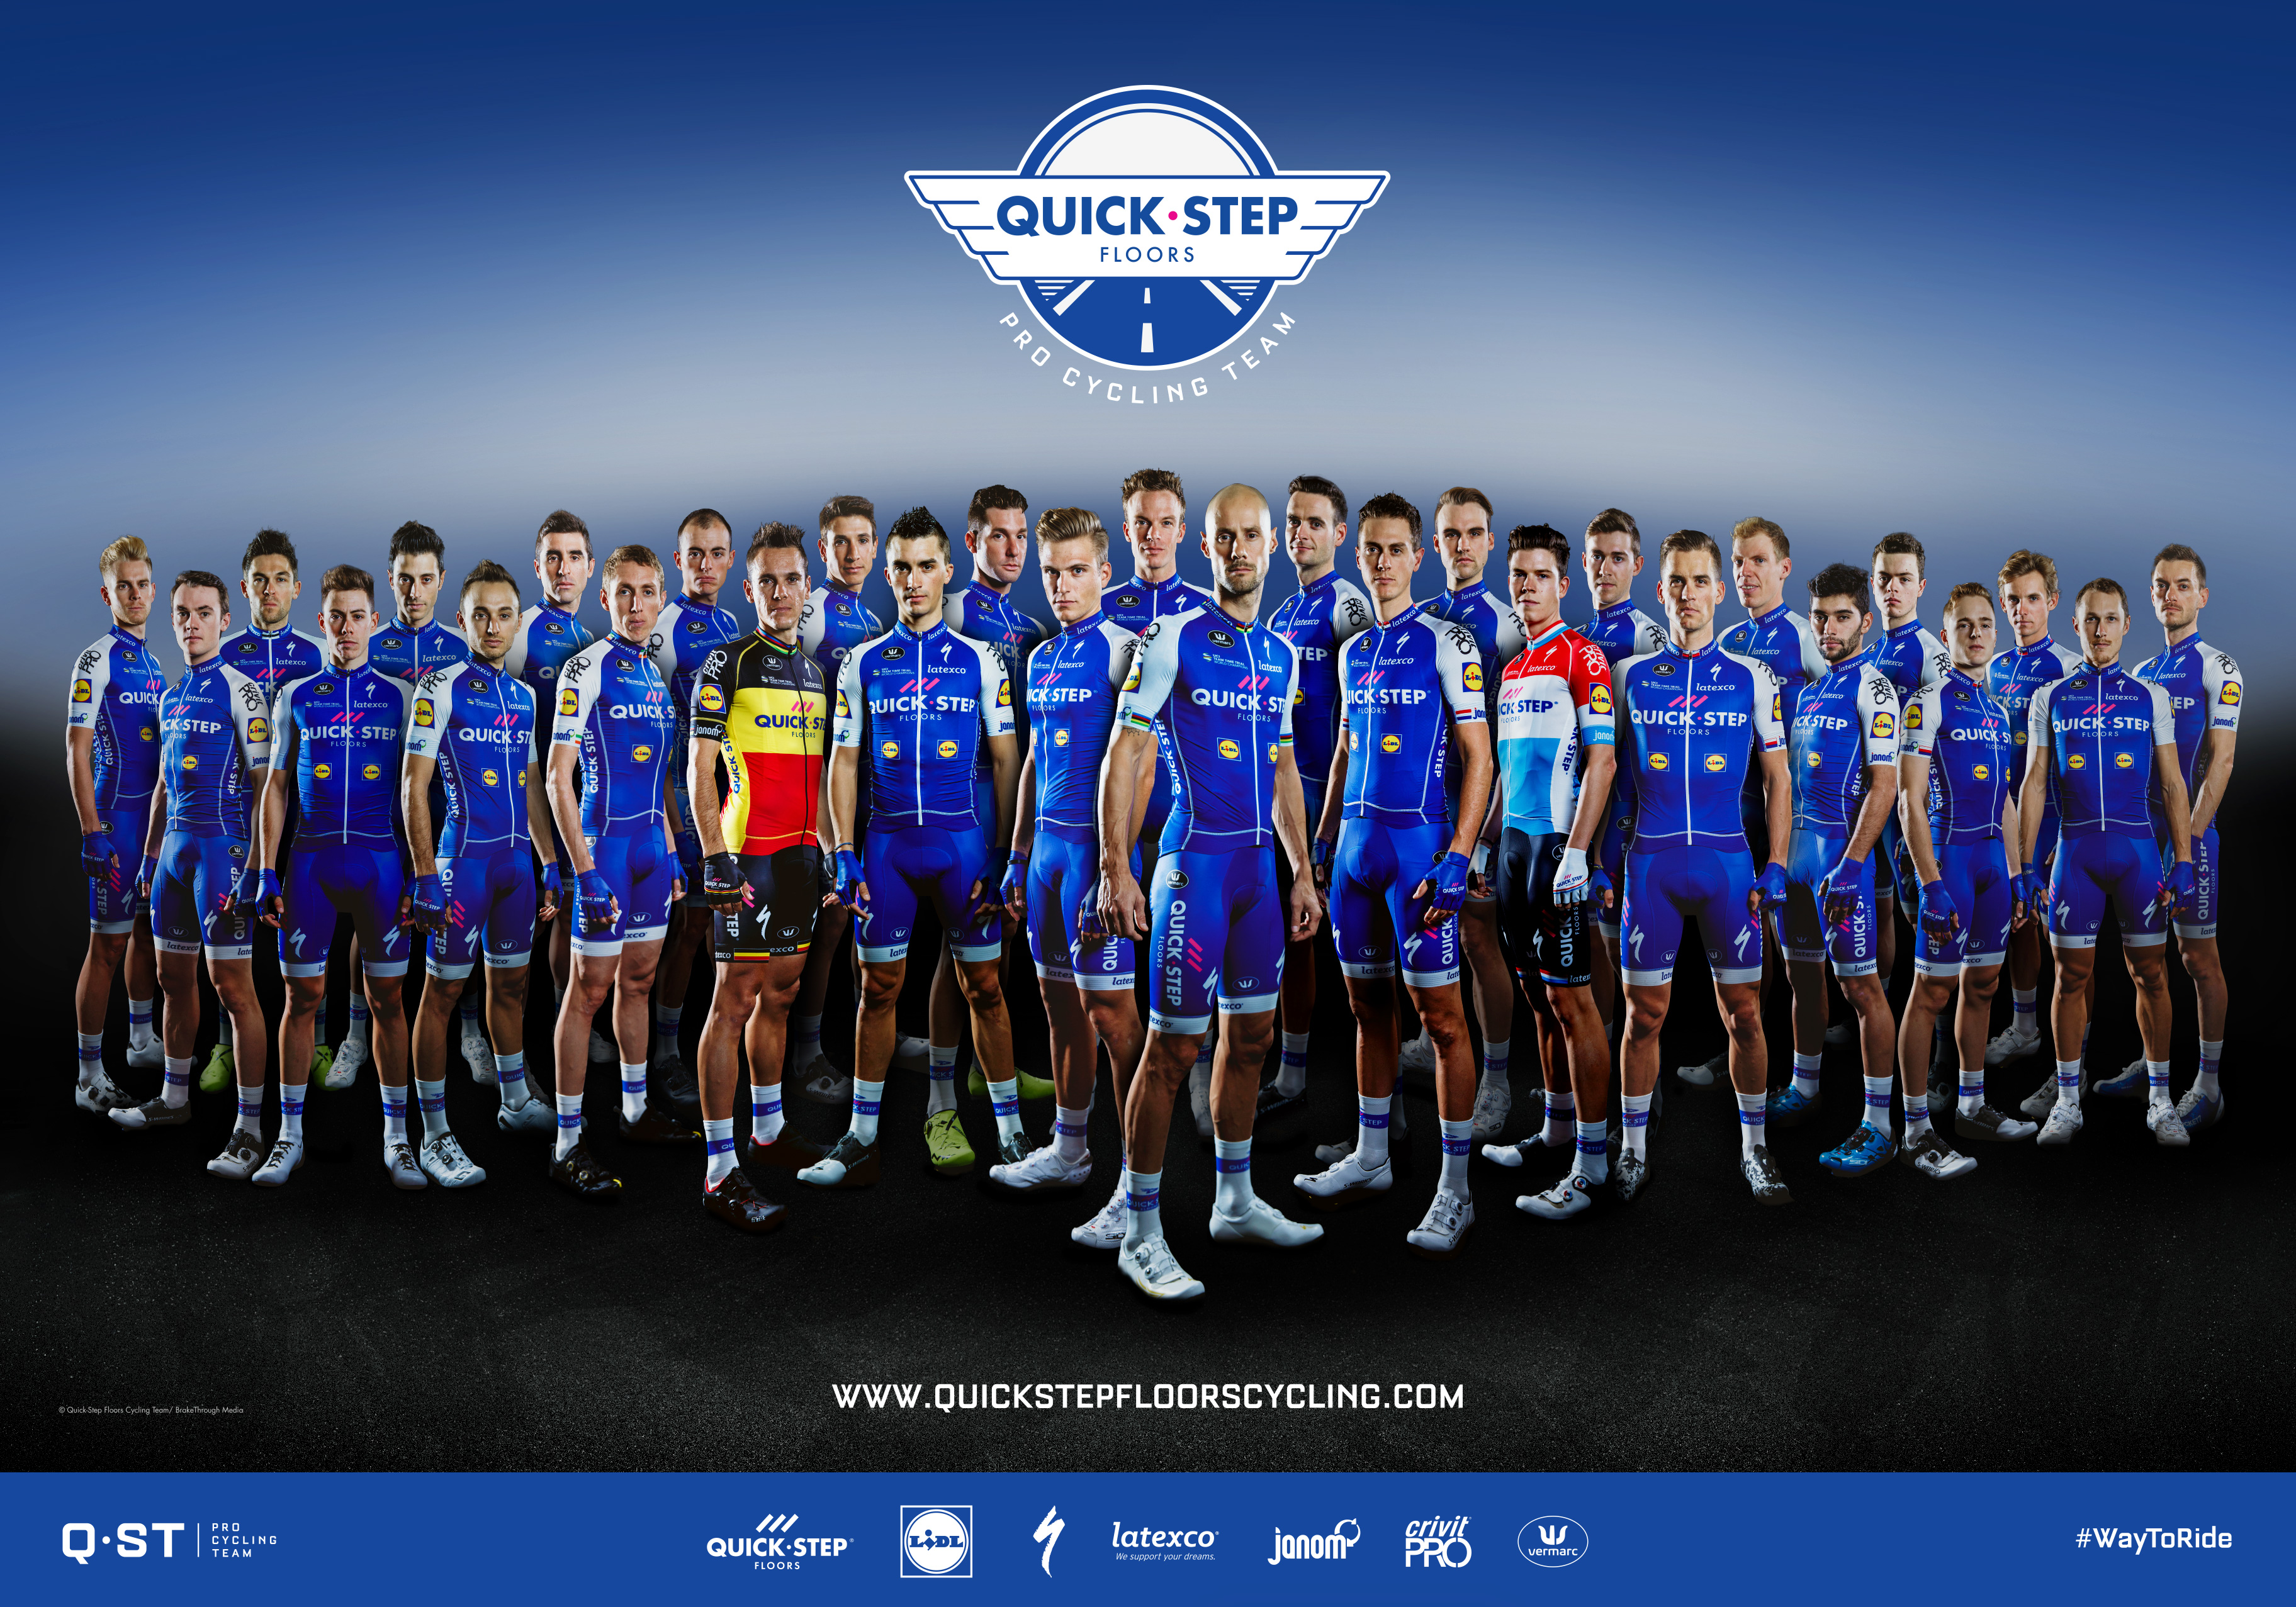 Quick step floors webshop quick step floors webshop for Quick step floors cycling team